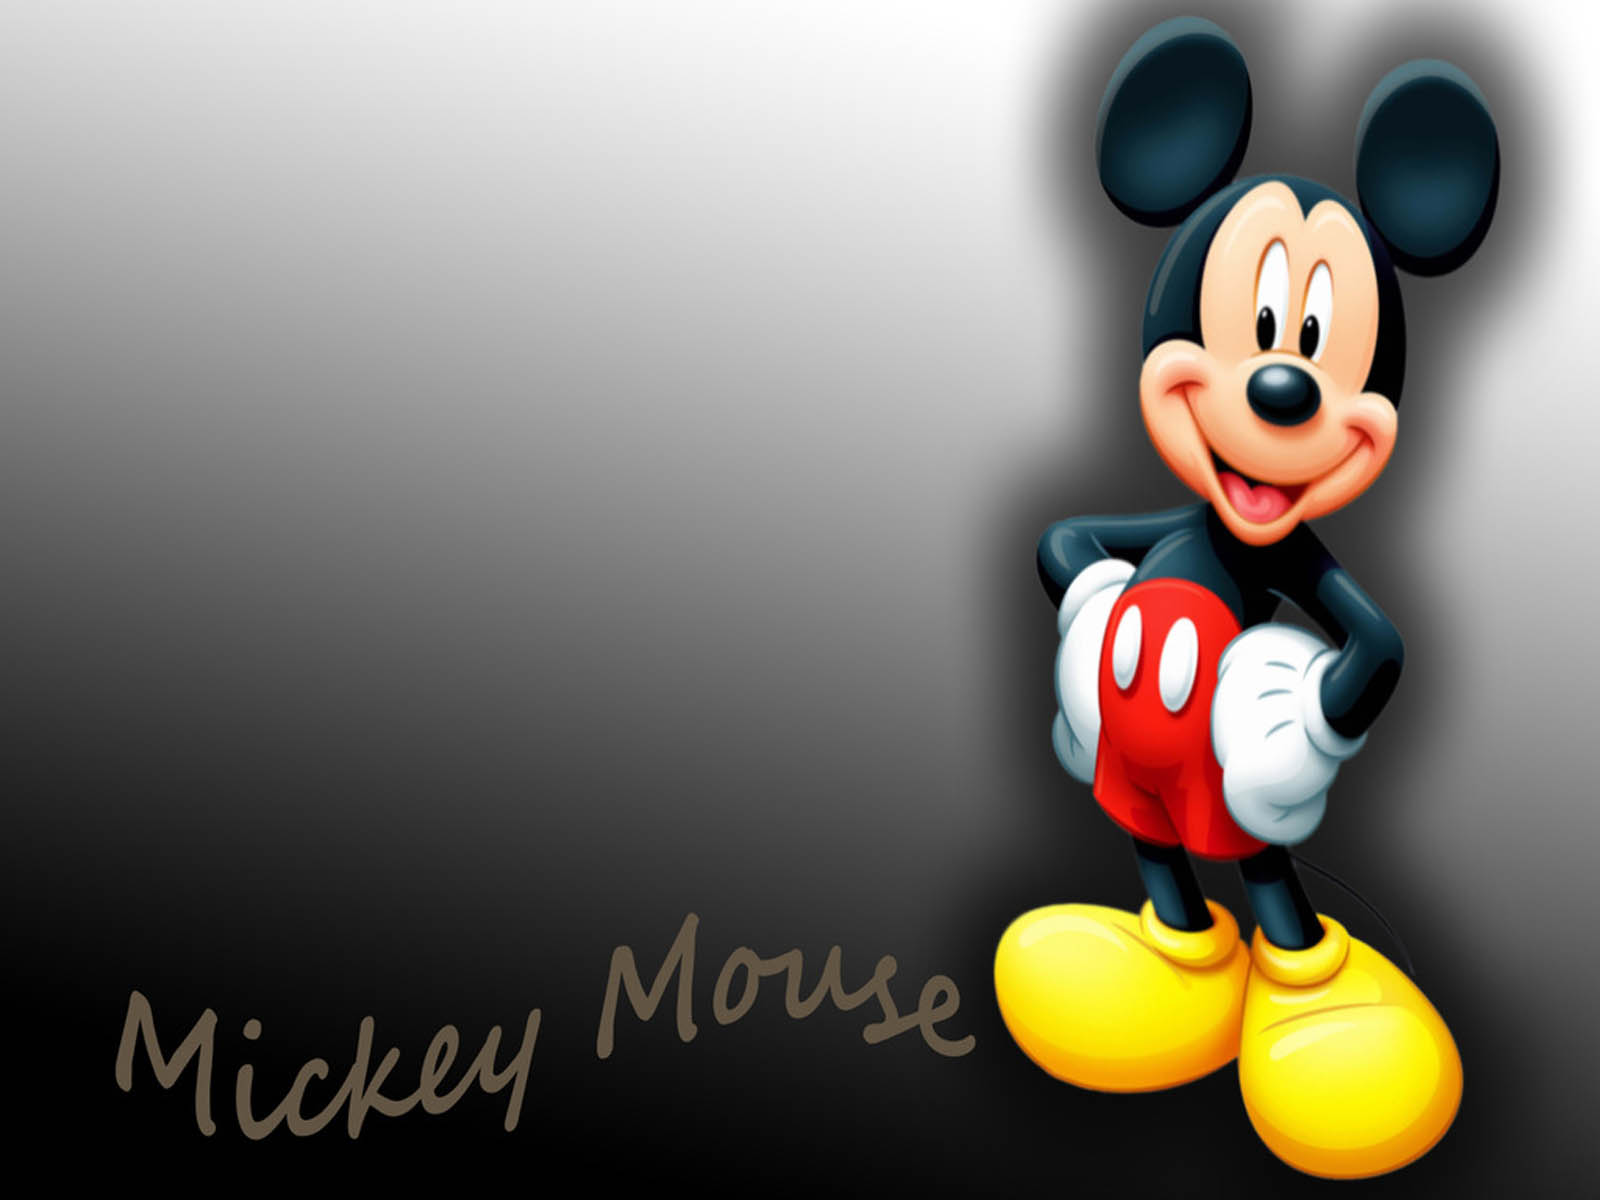 Mickey Mouse 1600x1200